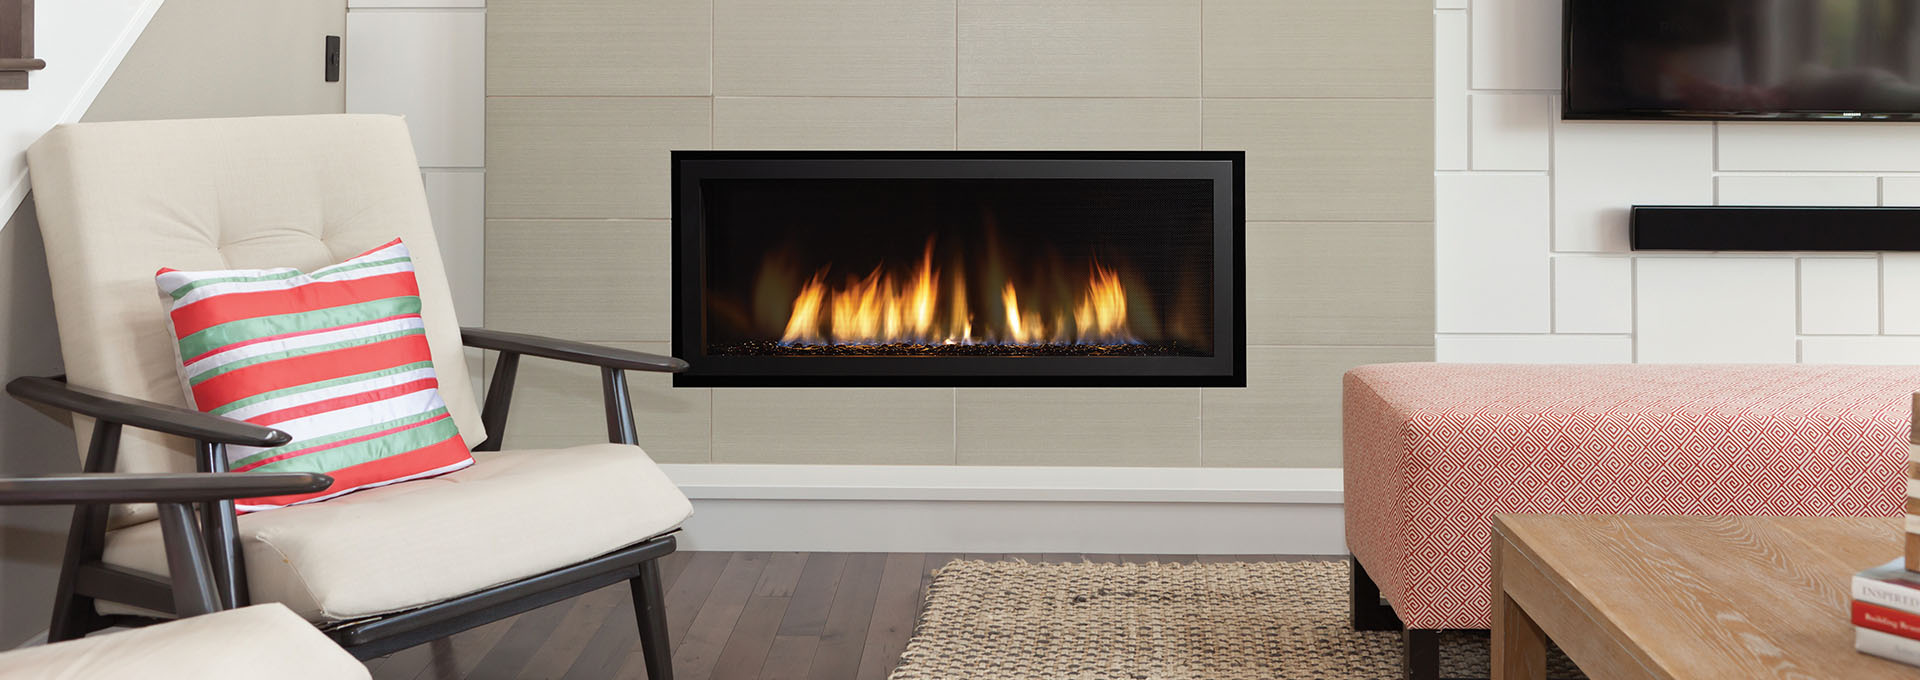 The Regency Contemporary Fireplace line is the perfect complement to today's decorating trends for clean and modern living spaces.